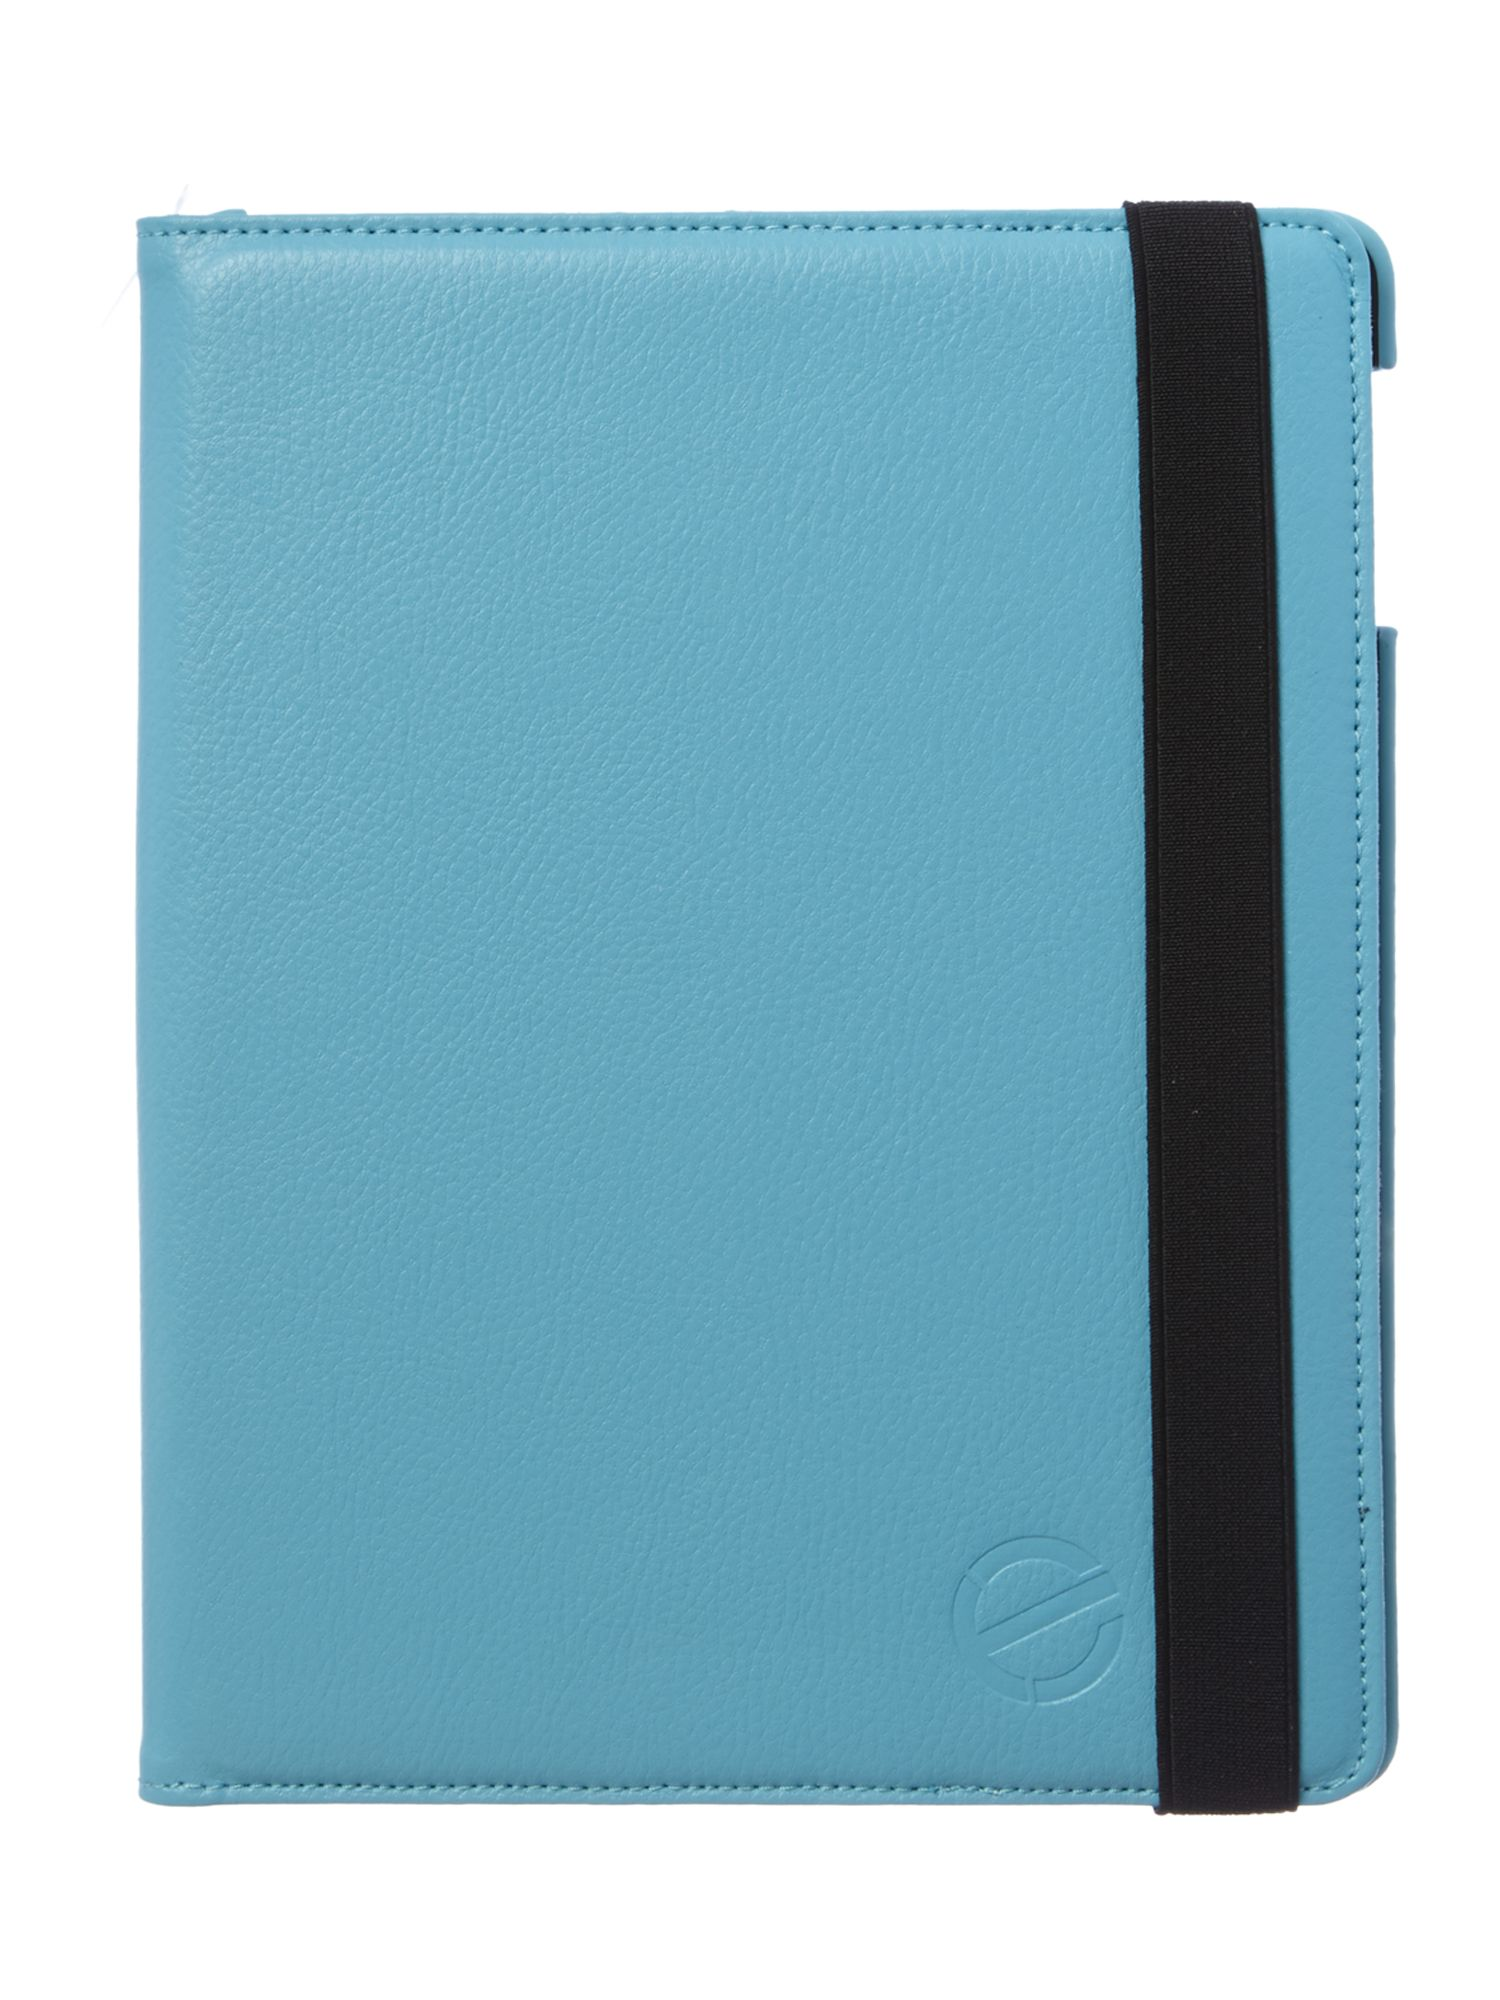 Blue 360 Ipad case